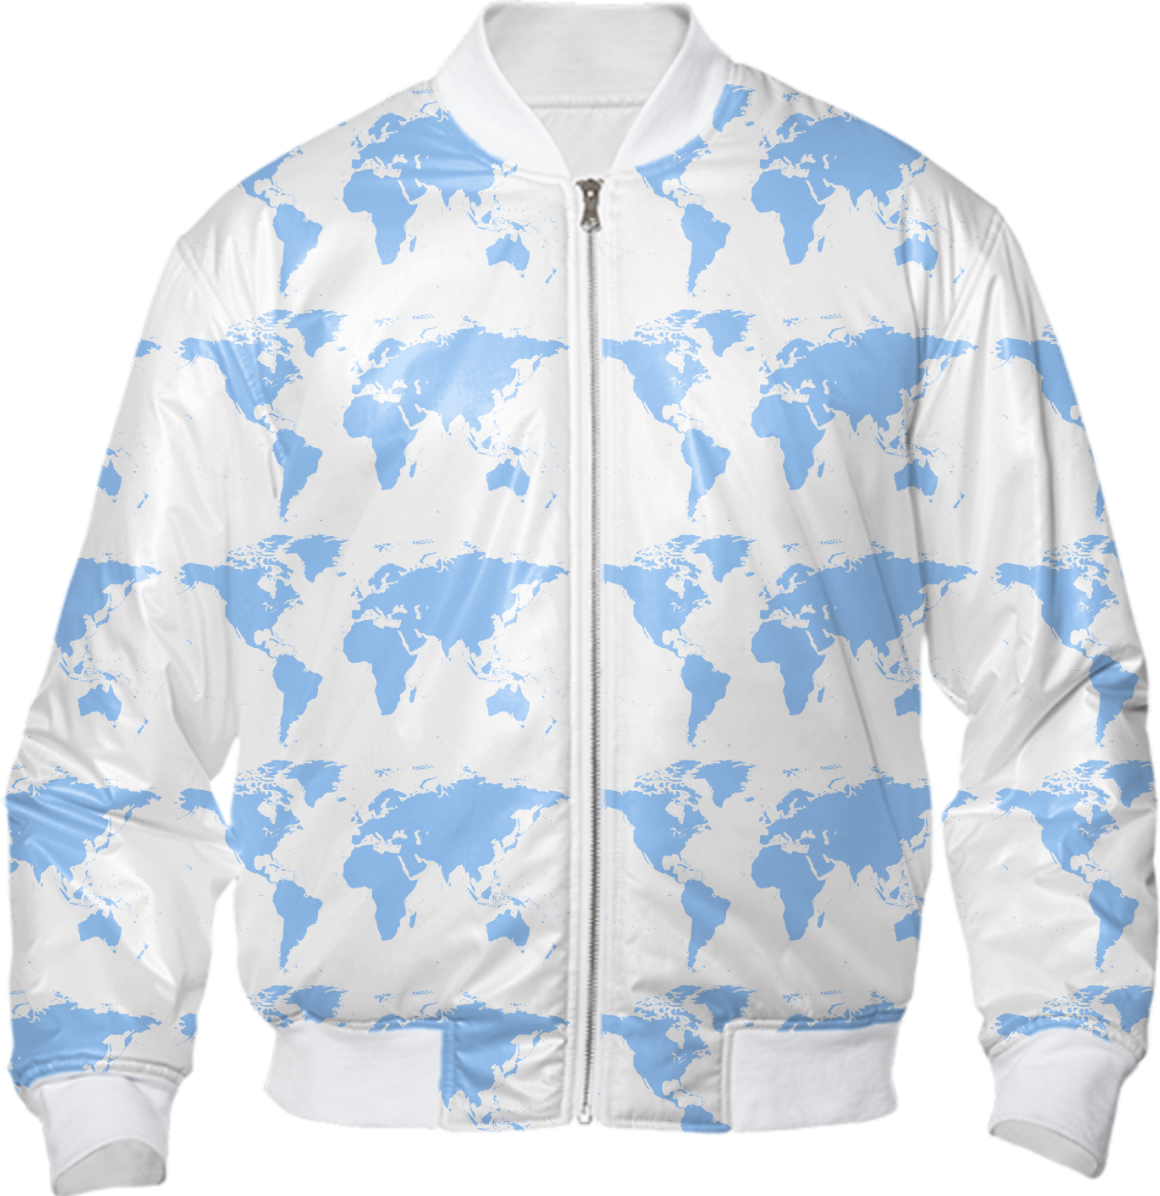 Shop blue world map pattern bomber jacket bomber jacket by elsewhere shop blue world map pattern bomber jacket bomber jacket by elsewhere print all over me gumiabroncs Gallery